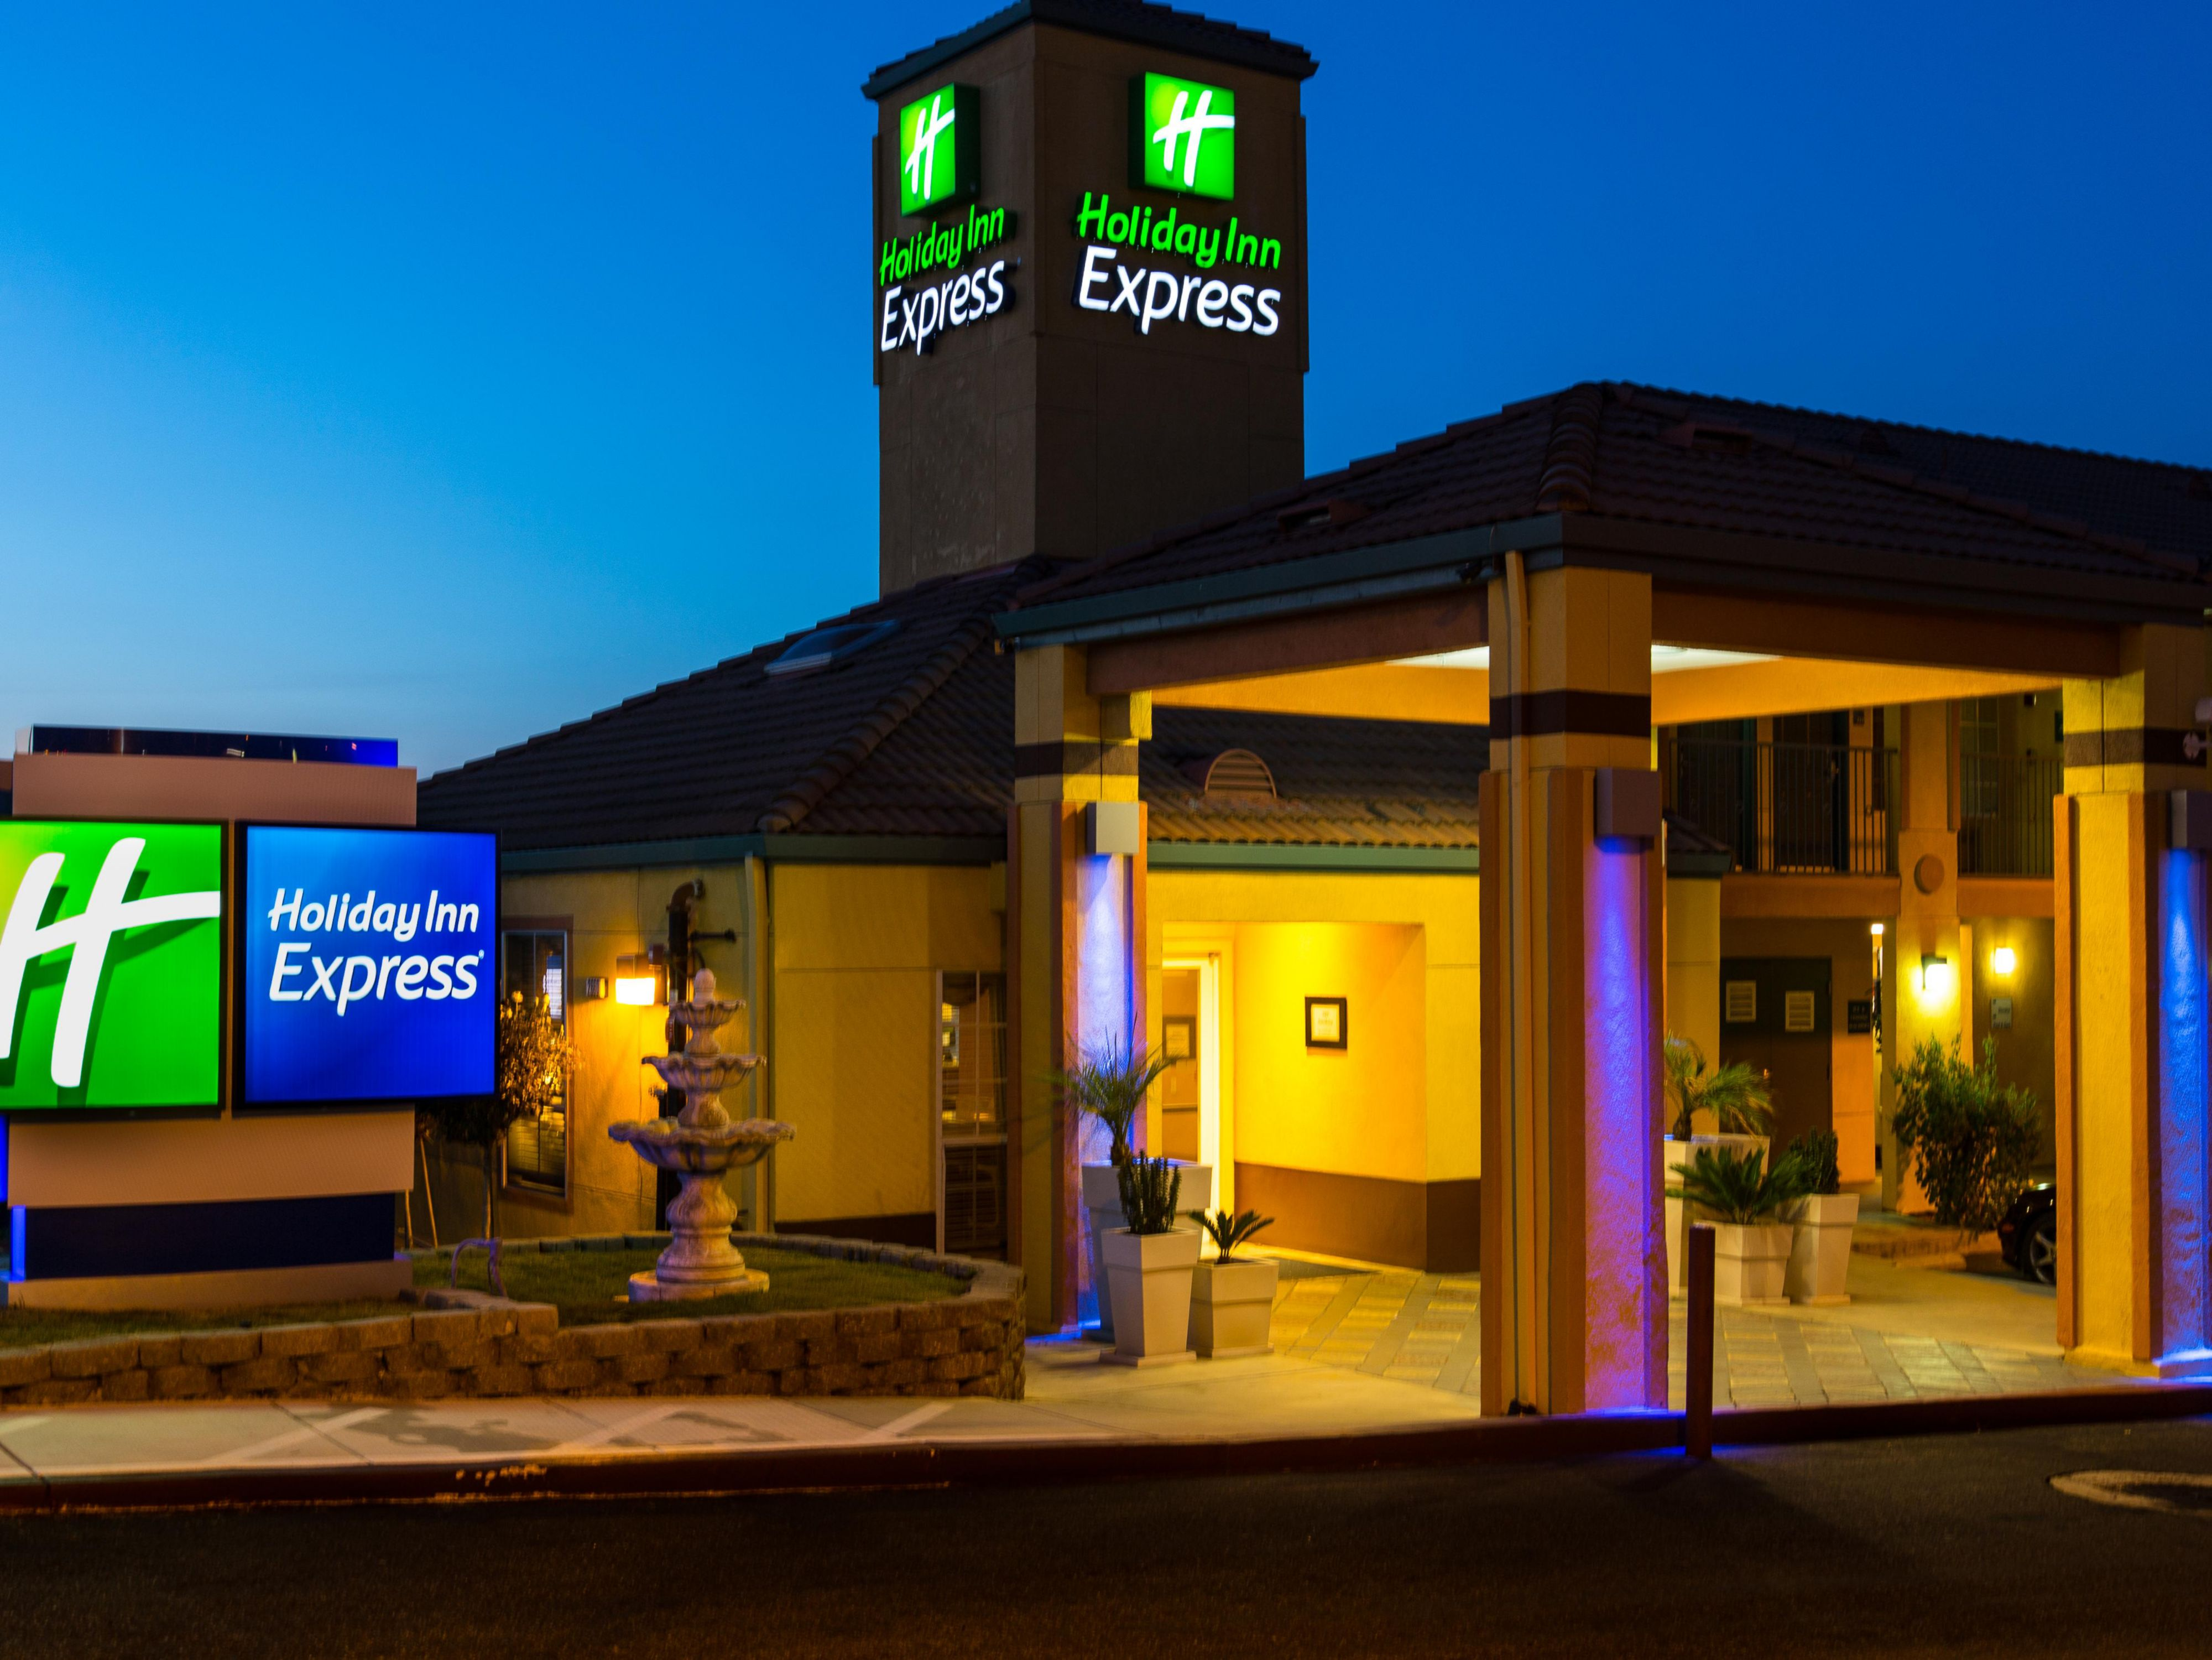 Holiday Inn Express San Jose Hotel Exterior